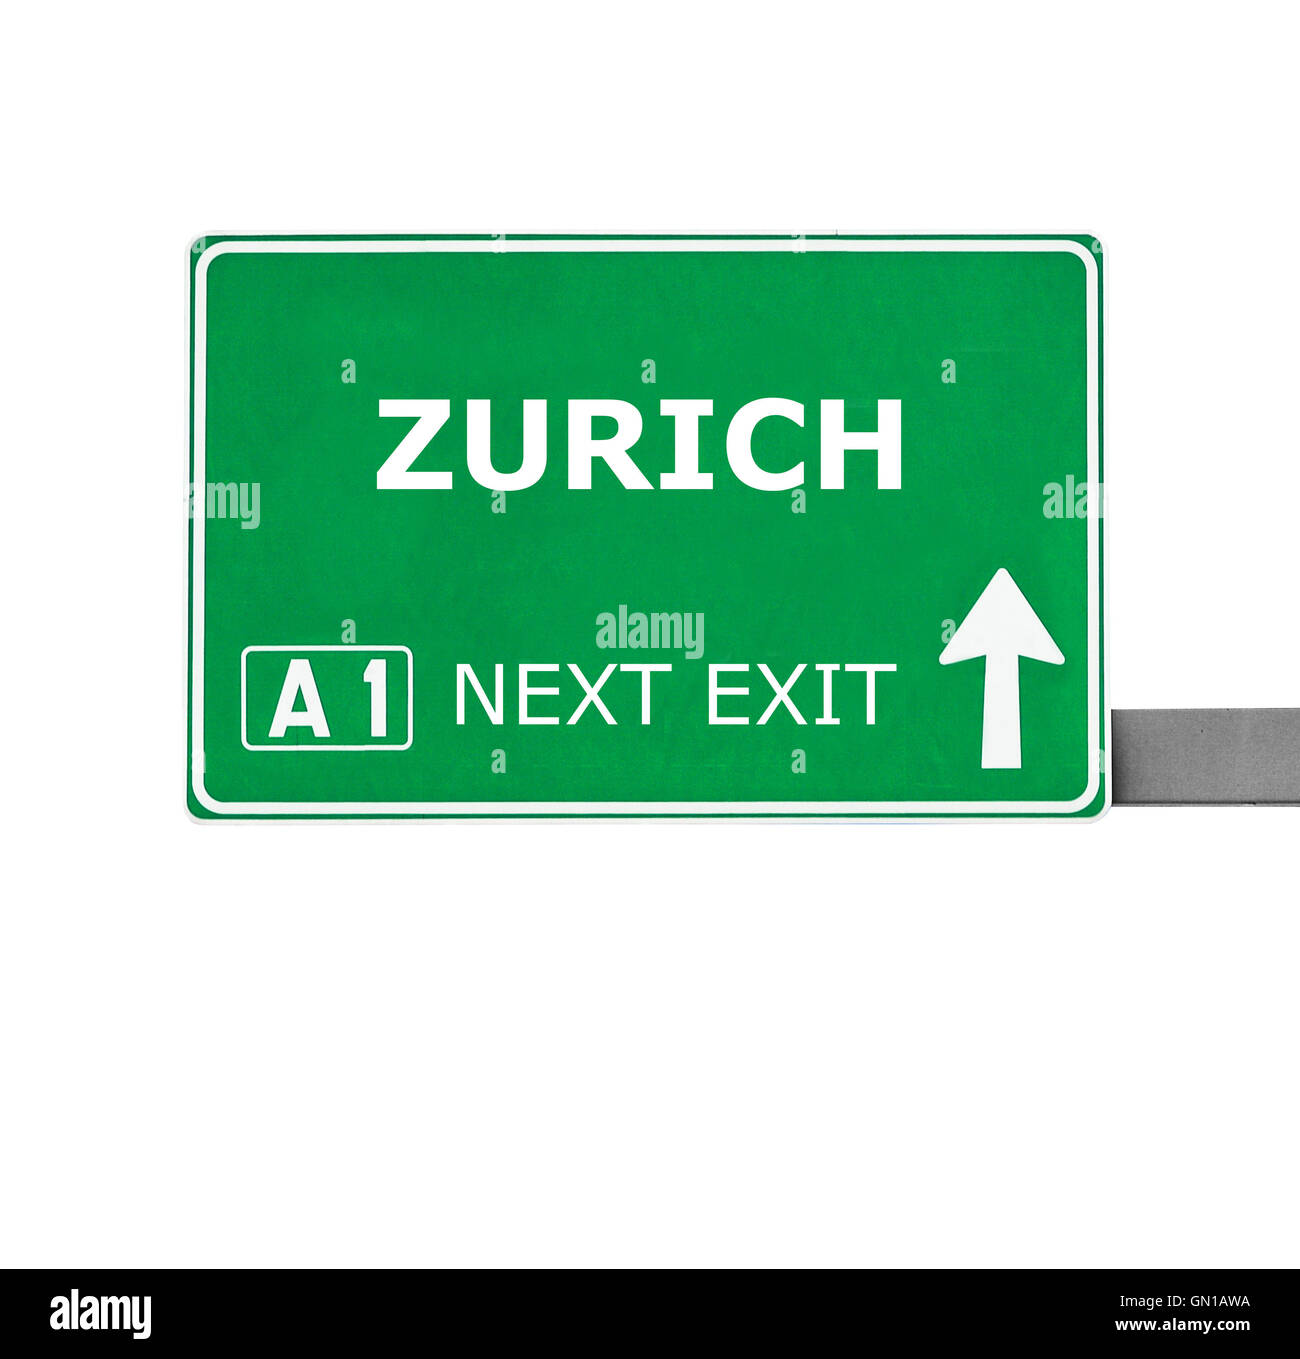 ZURICH road sign isolated on white - Stock Image